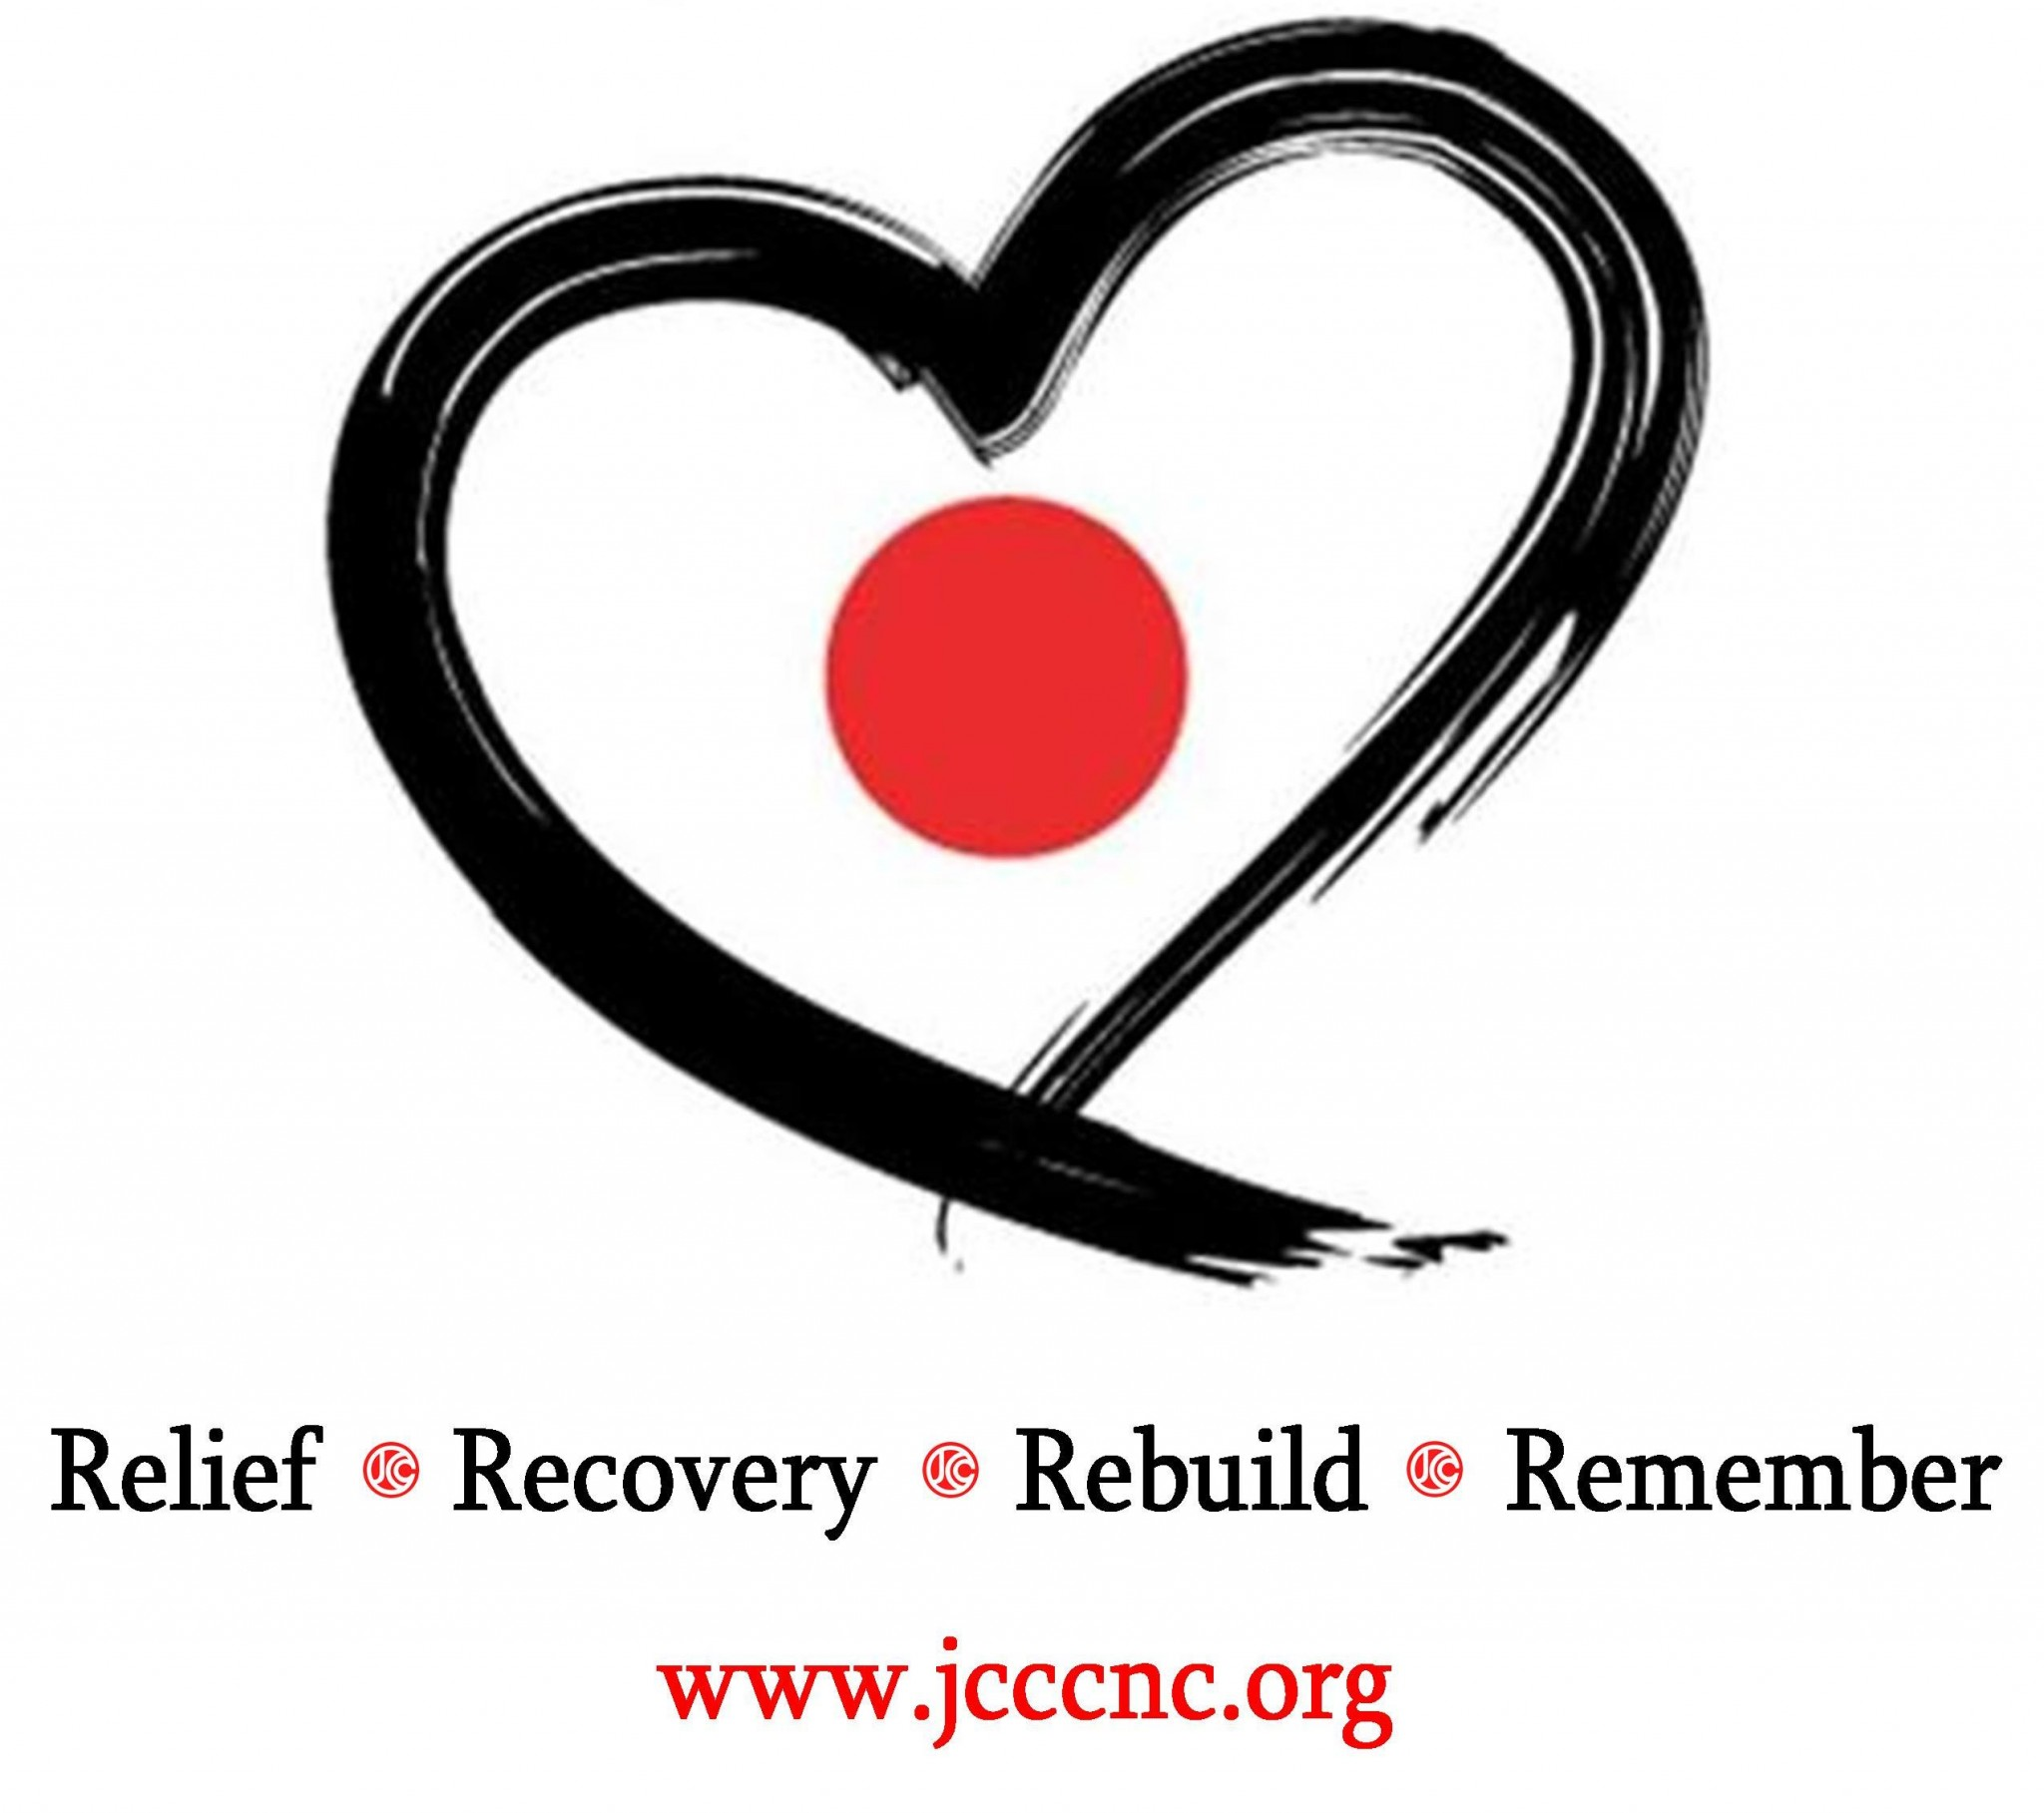 Northern japan earthquake relief fund japanese cultural and 5th anniversary community remembrance event biocorpaavc